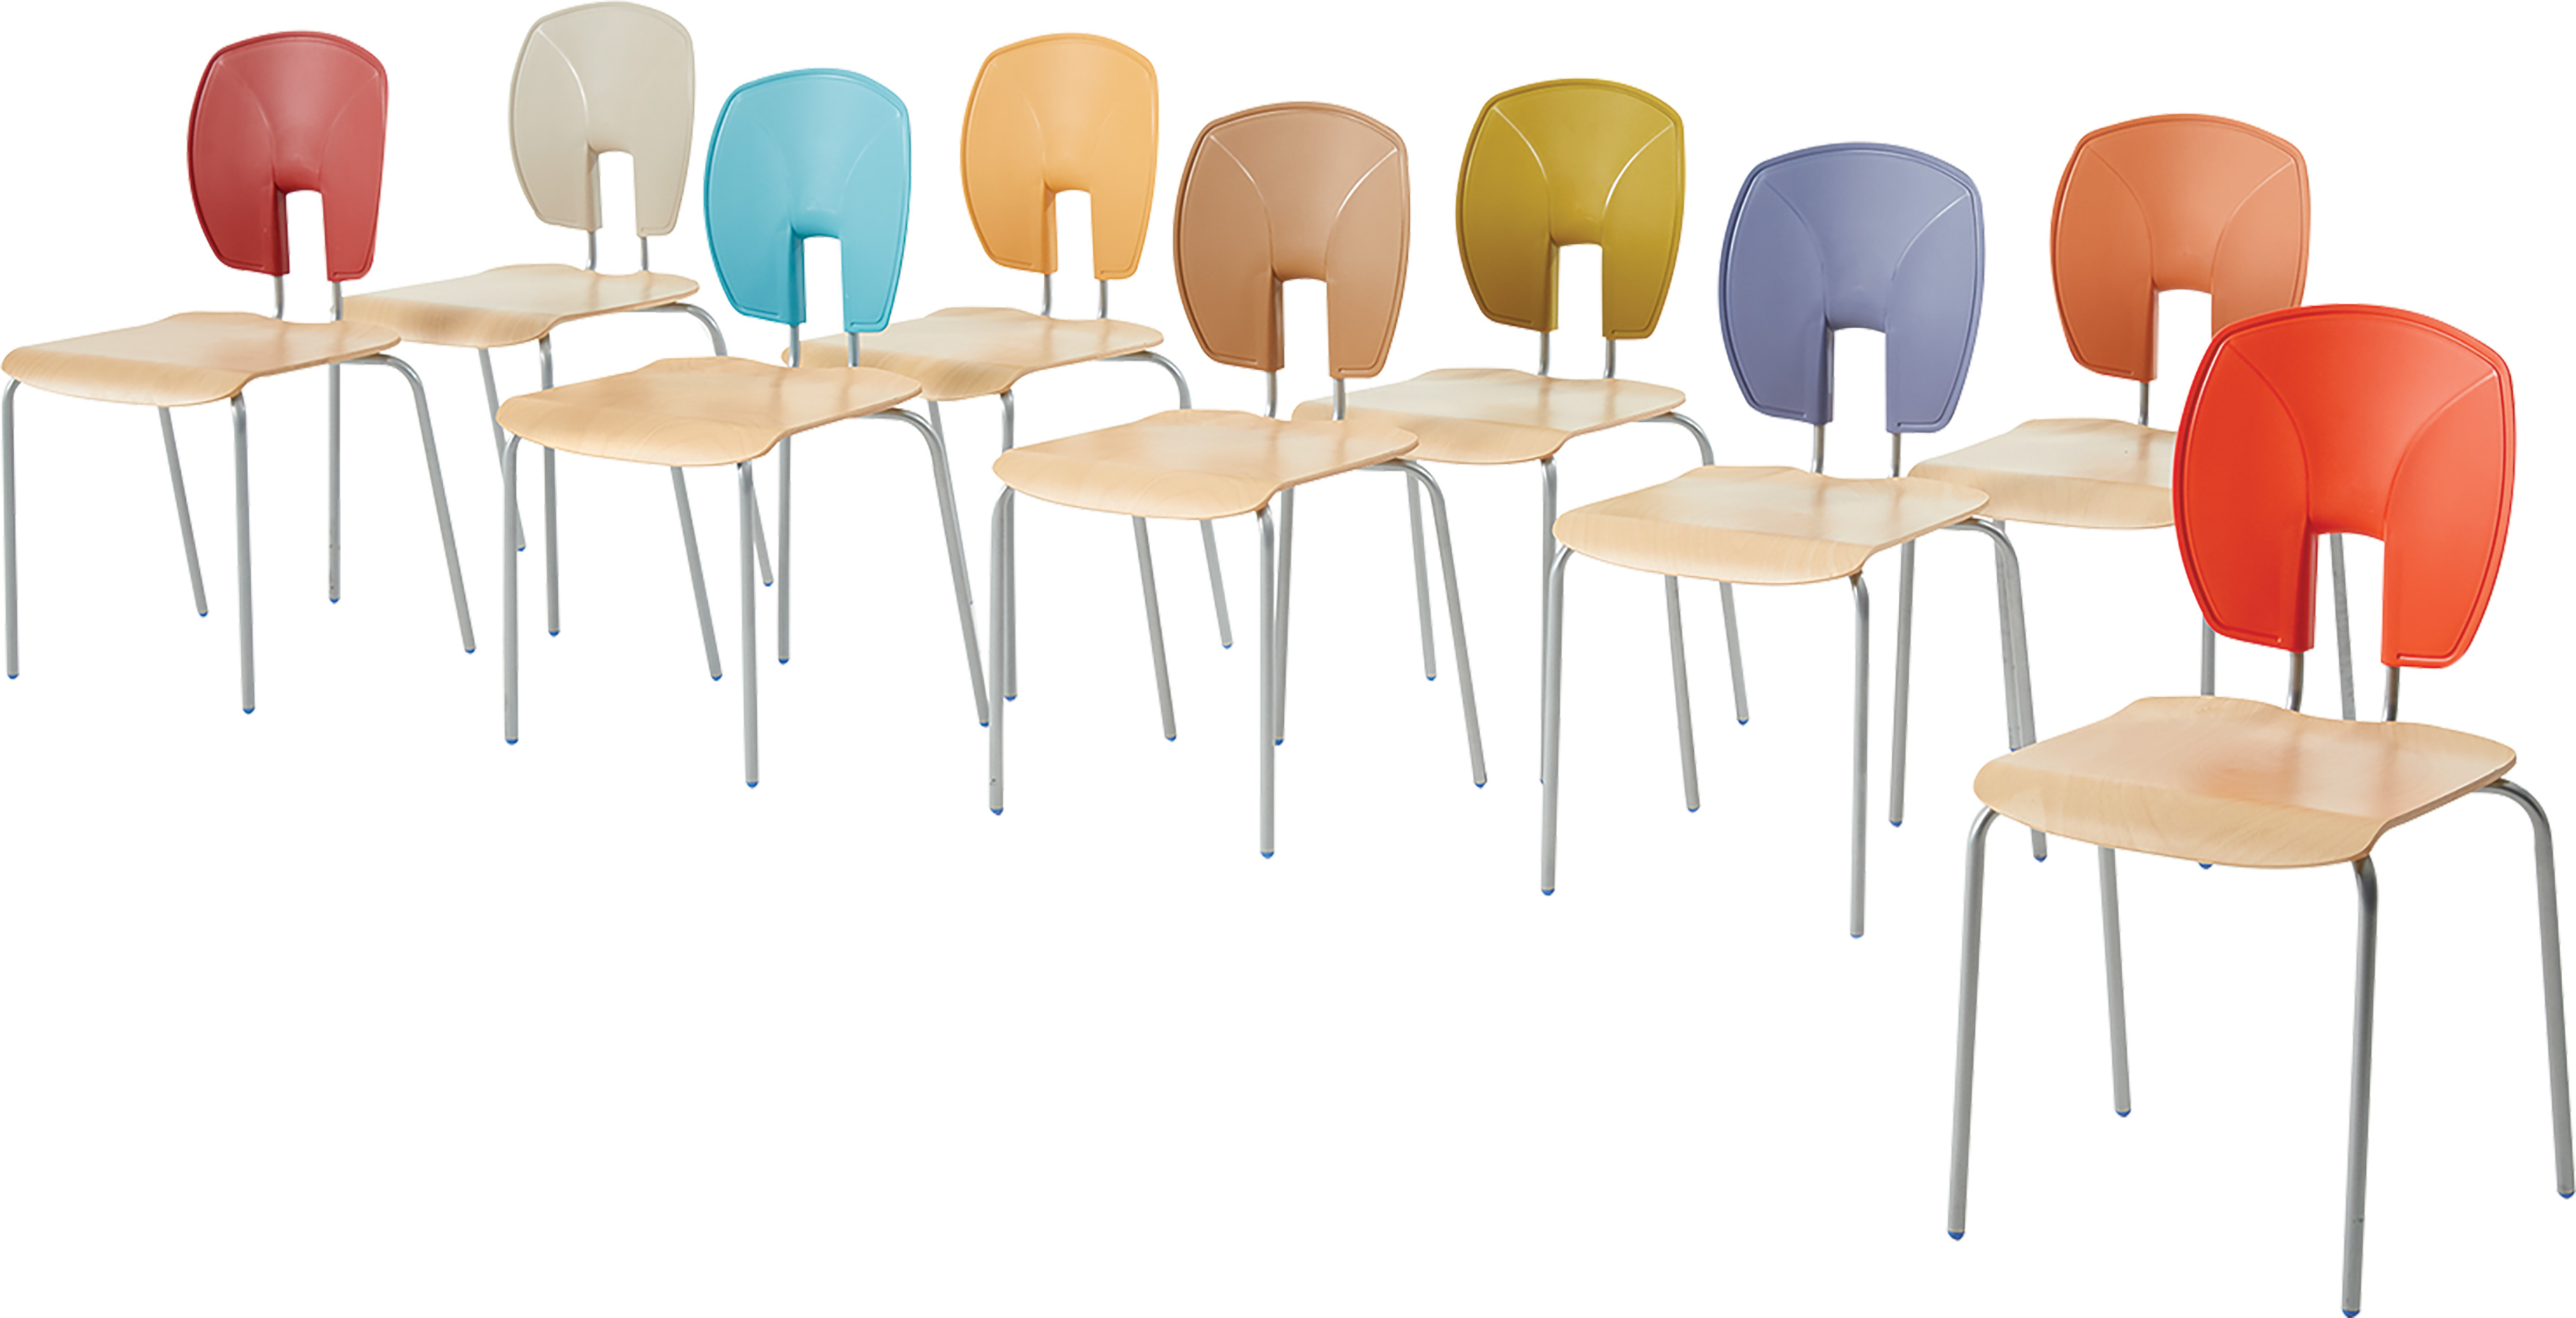 Muzo Mix® Chairs